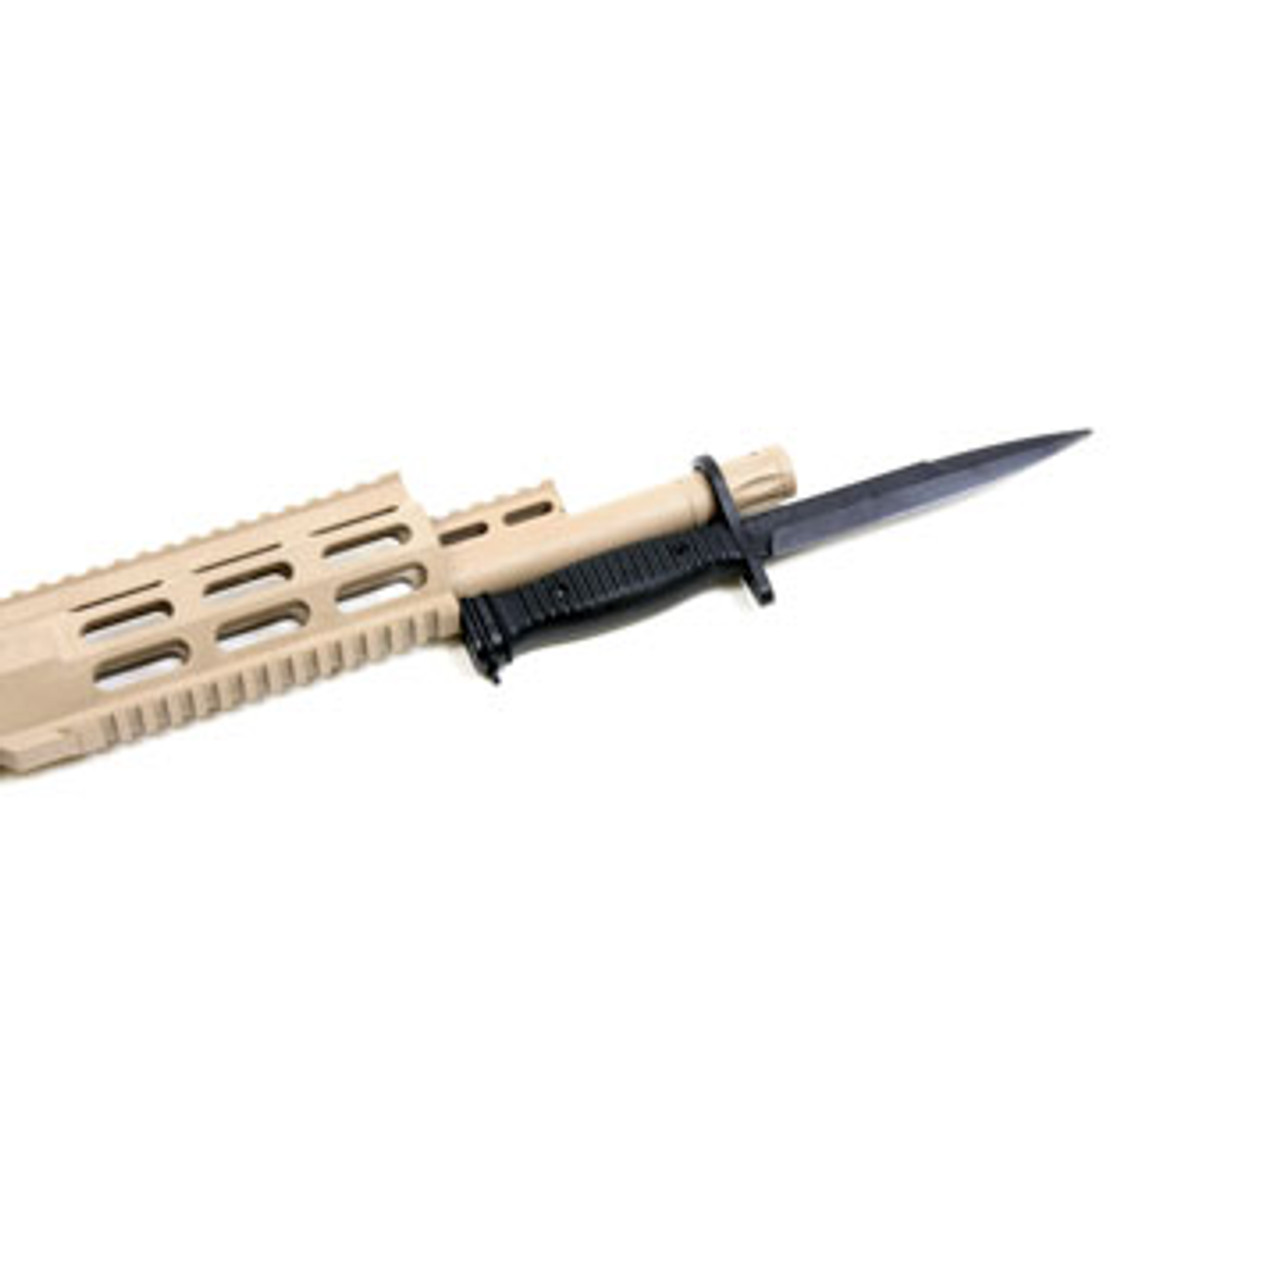 Archangel® 556 AR-15® Style Conversion Stock for the Ruger® 10/22® - Desert Tan Polymer